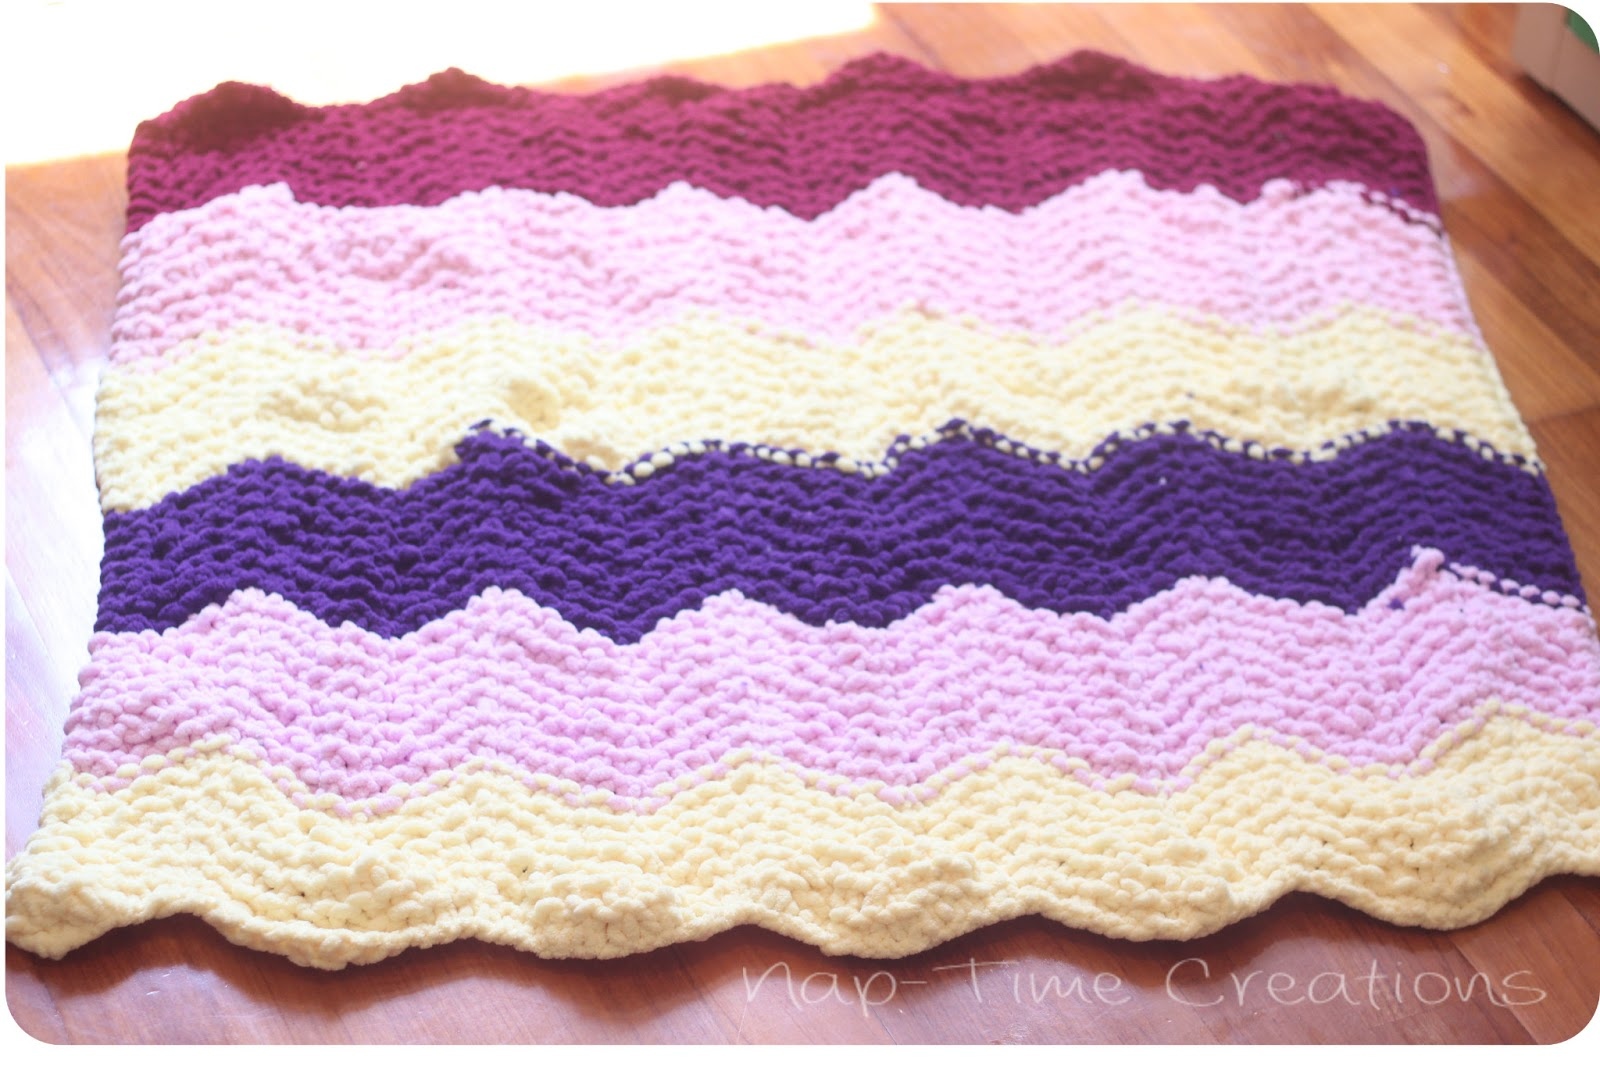 Free Knitting Pattern For Chevron Blanket : Chevron Baby Blanket {free knitting pattern} - Life Sew Savory